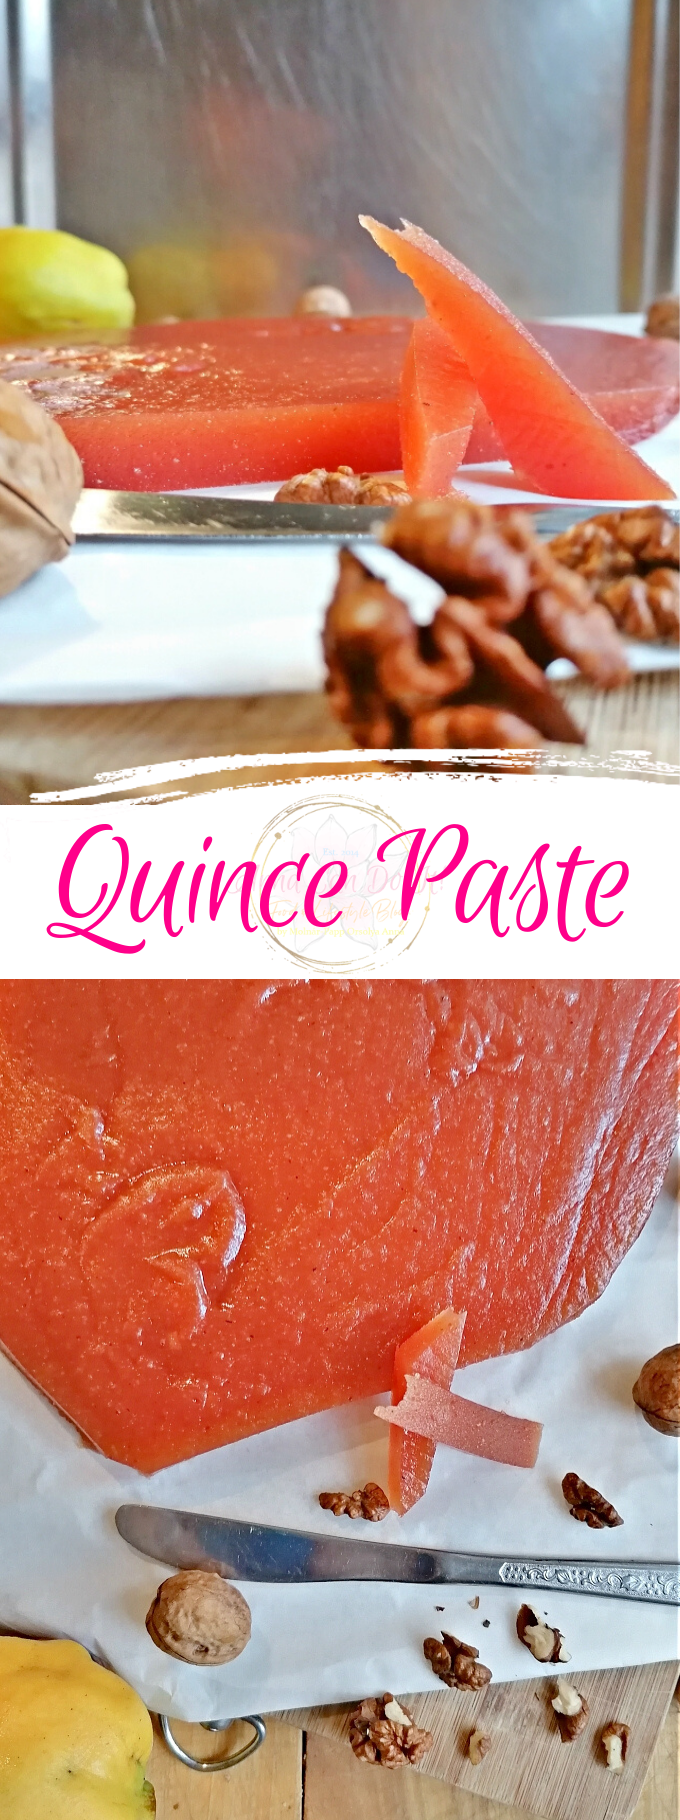 Quince Paste - Anna Can Do It!